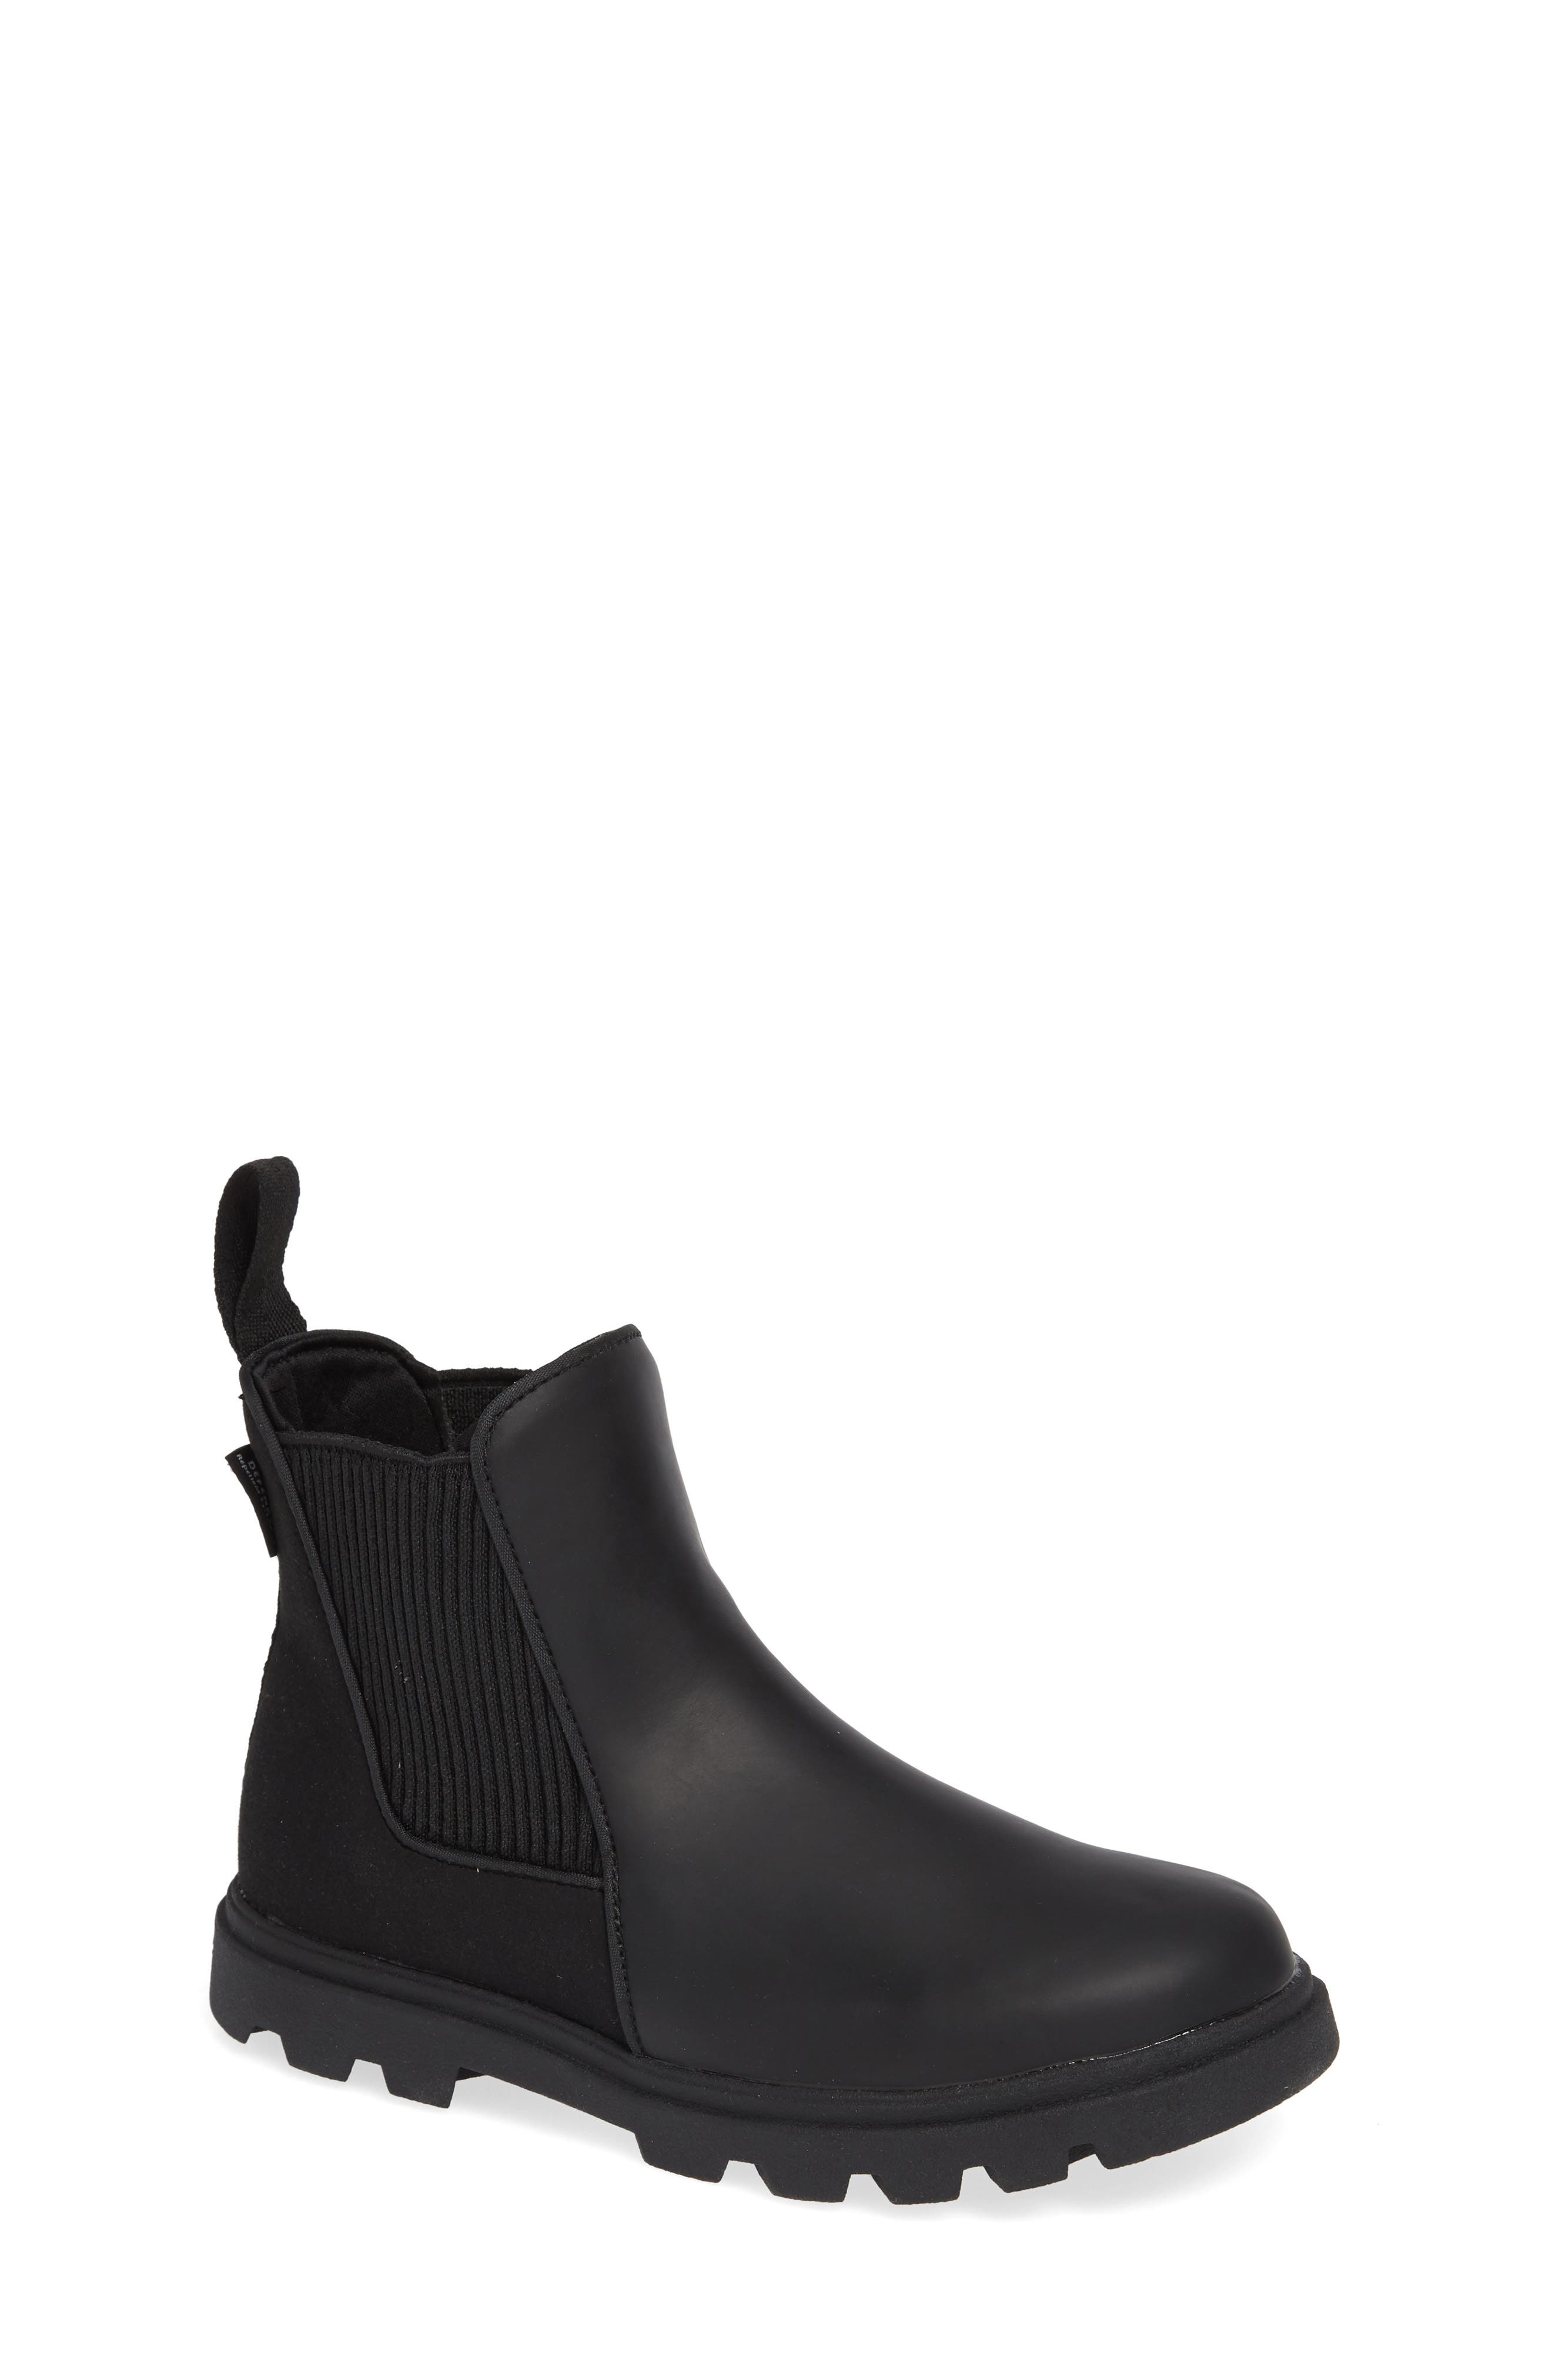 Kensington Treklite Vegan Leather Chelsea Bootie,                         Main,                         color, JIFFY BLACK